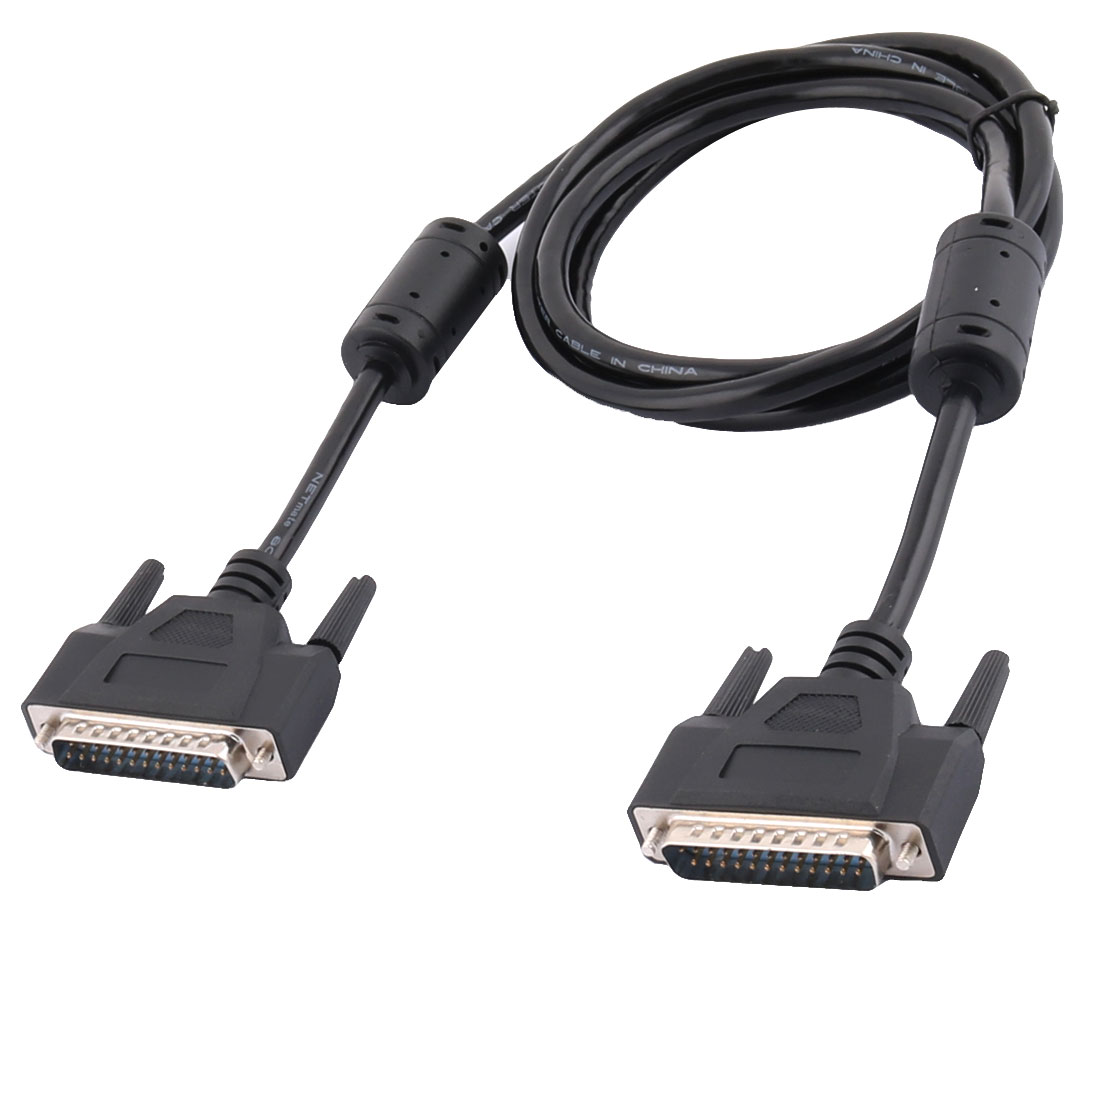 Black DB25 25 Pin Male to Male Parallel Printer Connector Extension Cable 5t 1.5M